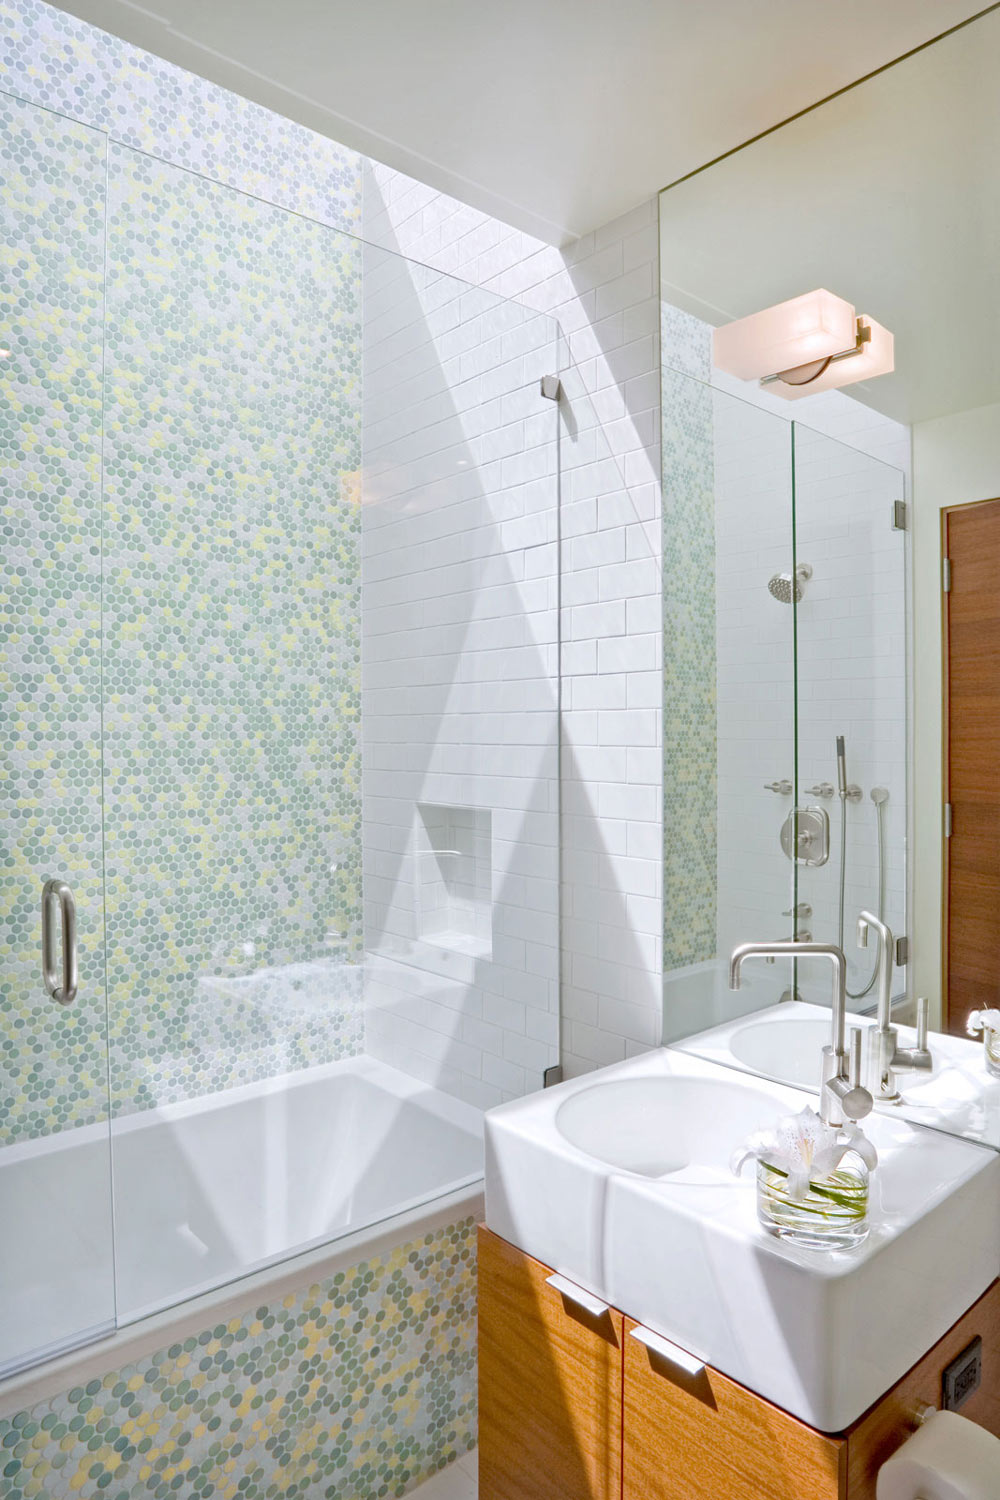 Bathroom, Wheeler Residence in Menlo Park, California by William Duff Architects